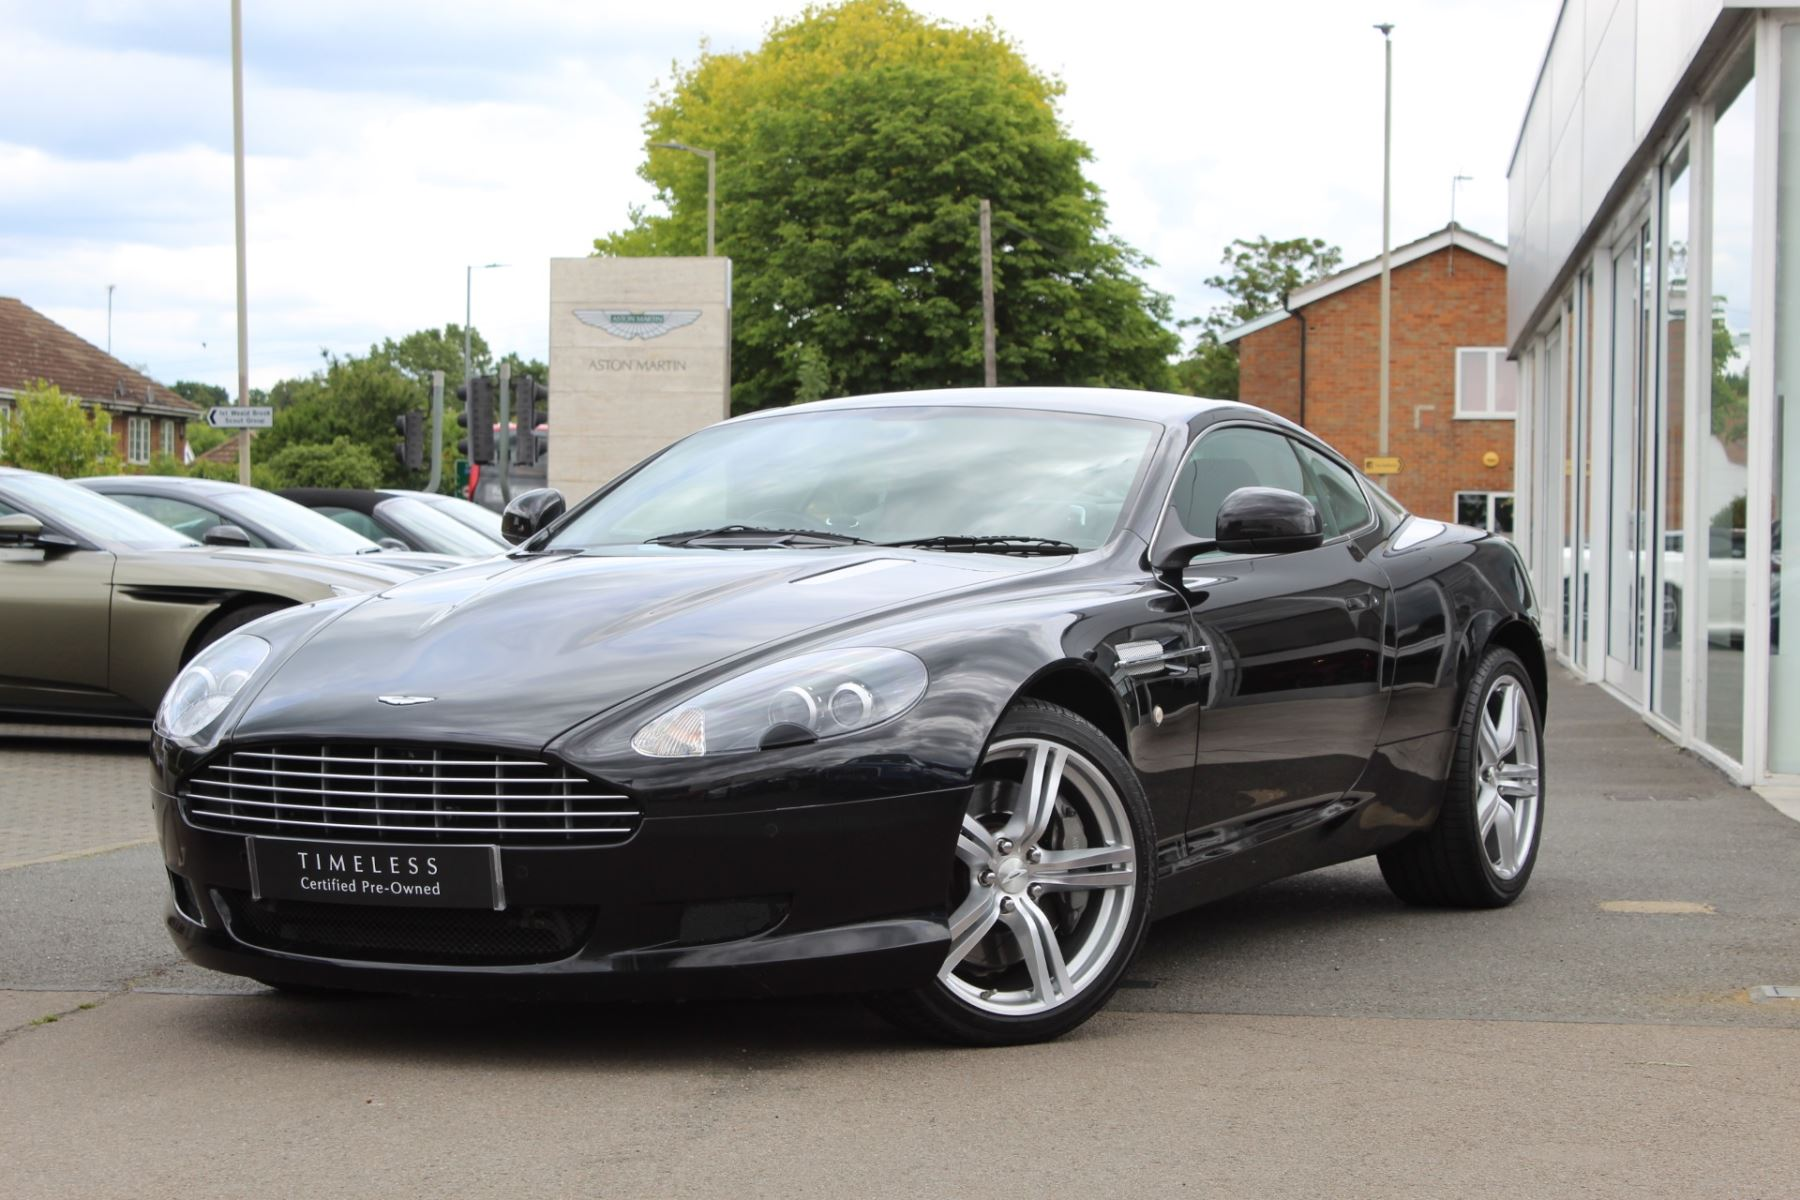 Aston Martin DB9 V12 2dr Touchtronic [470] 5.9 Automatic Coupe (2010.75) image